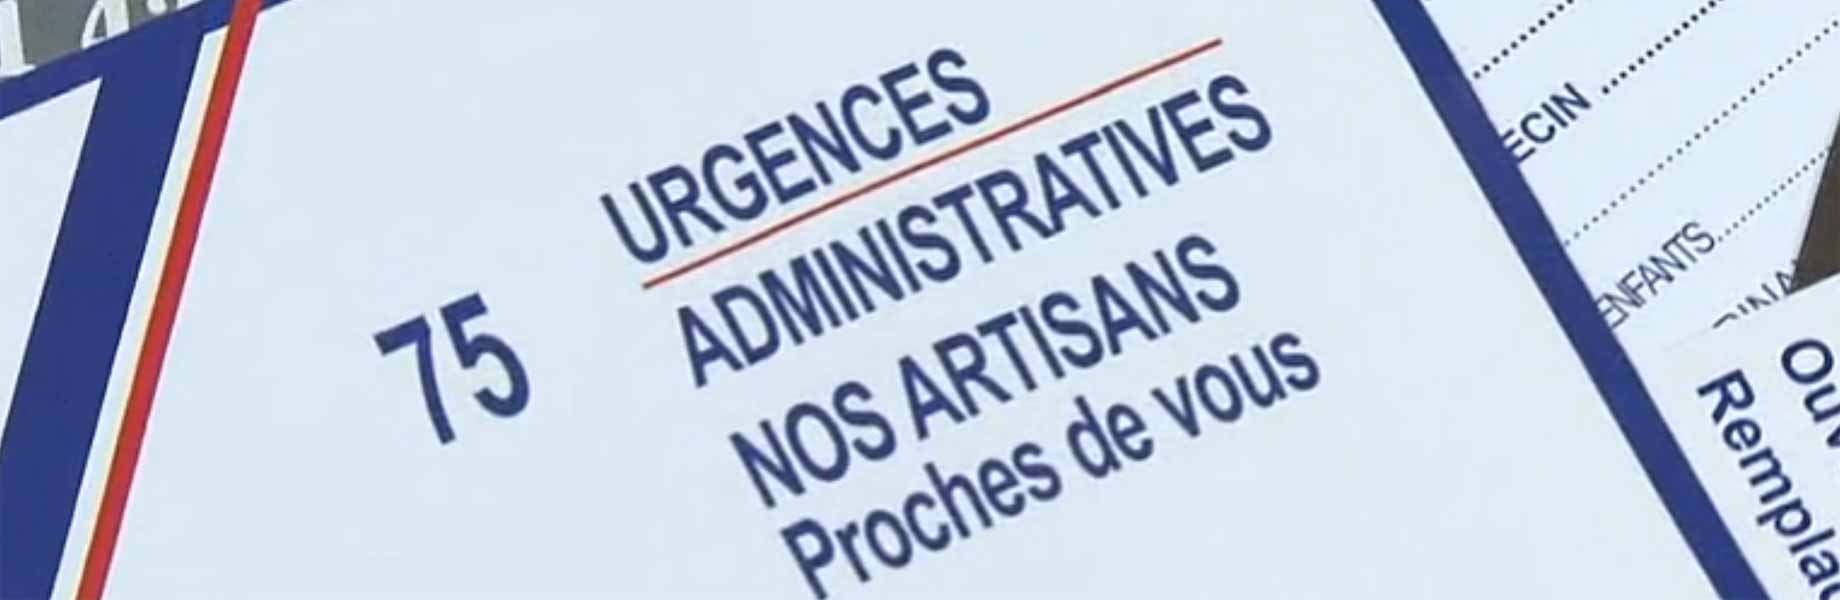 Attention à ces prospectus qui imitent des documents officiels